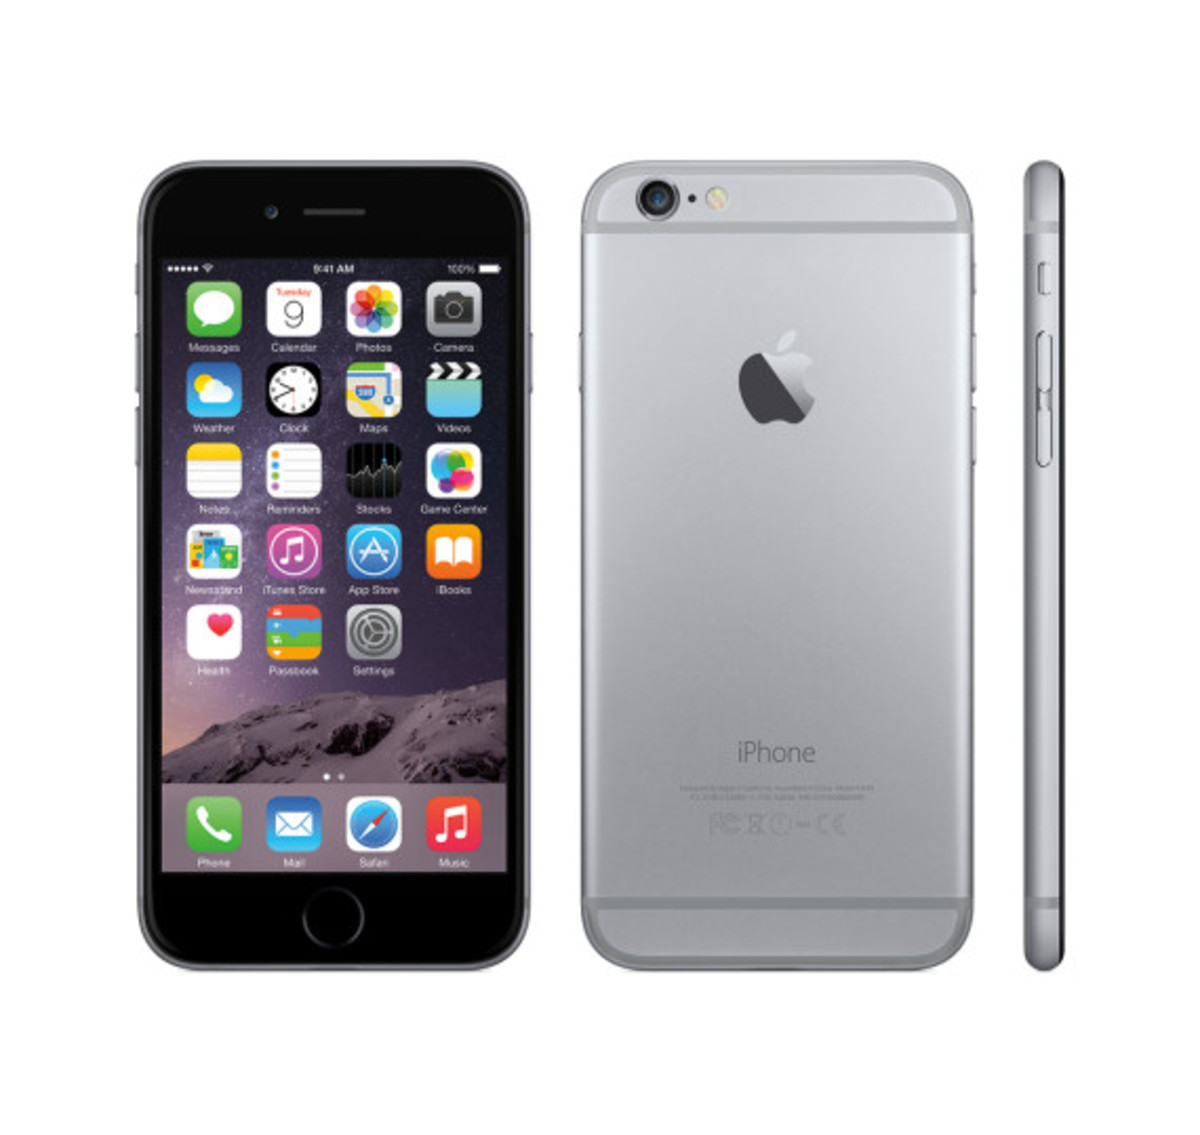 Apple iPhone 6 and iPhone 6 Plus | Available Now - 2